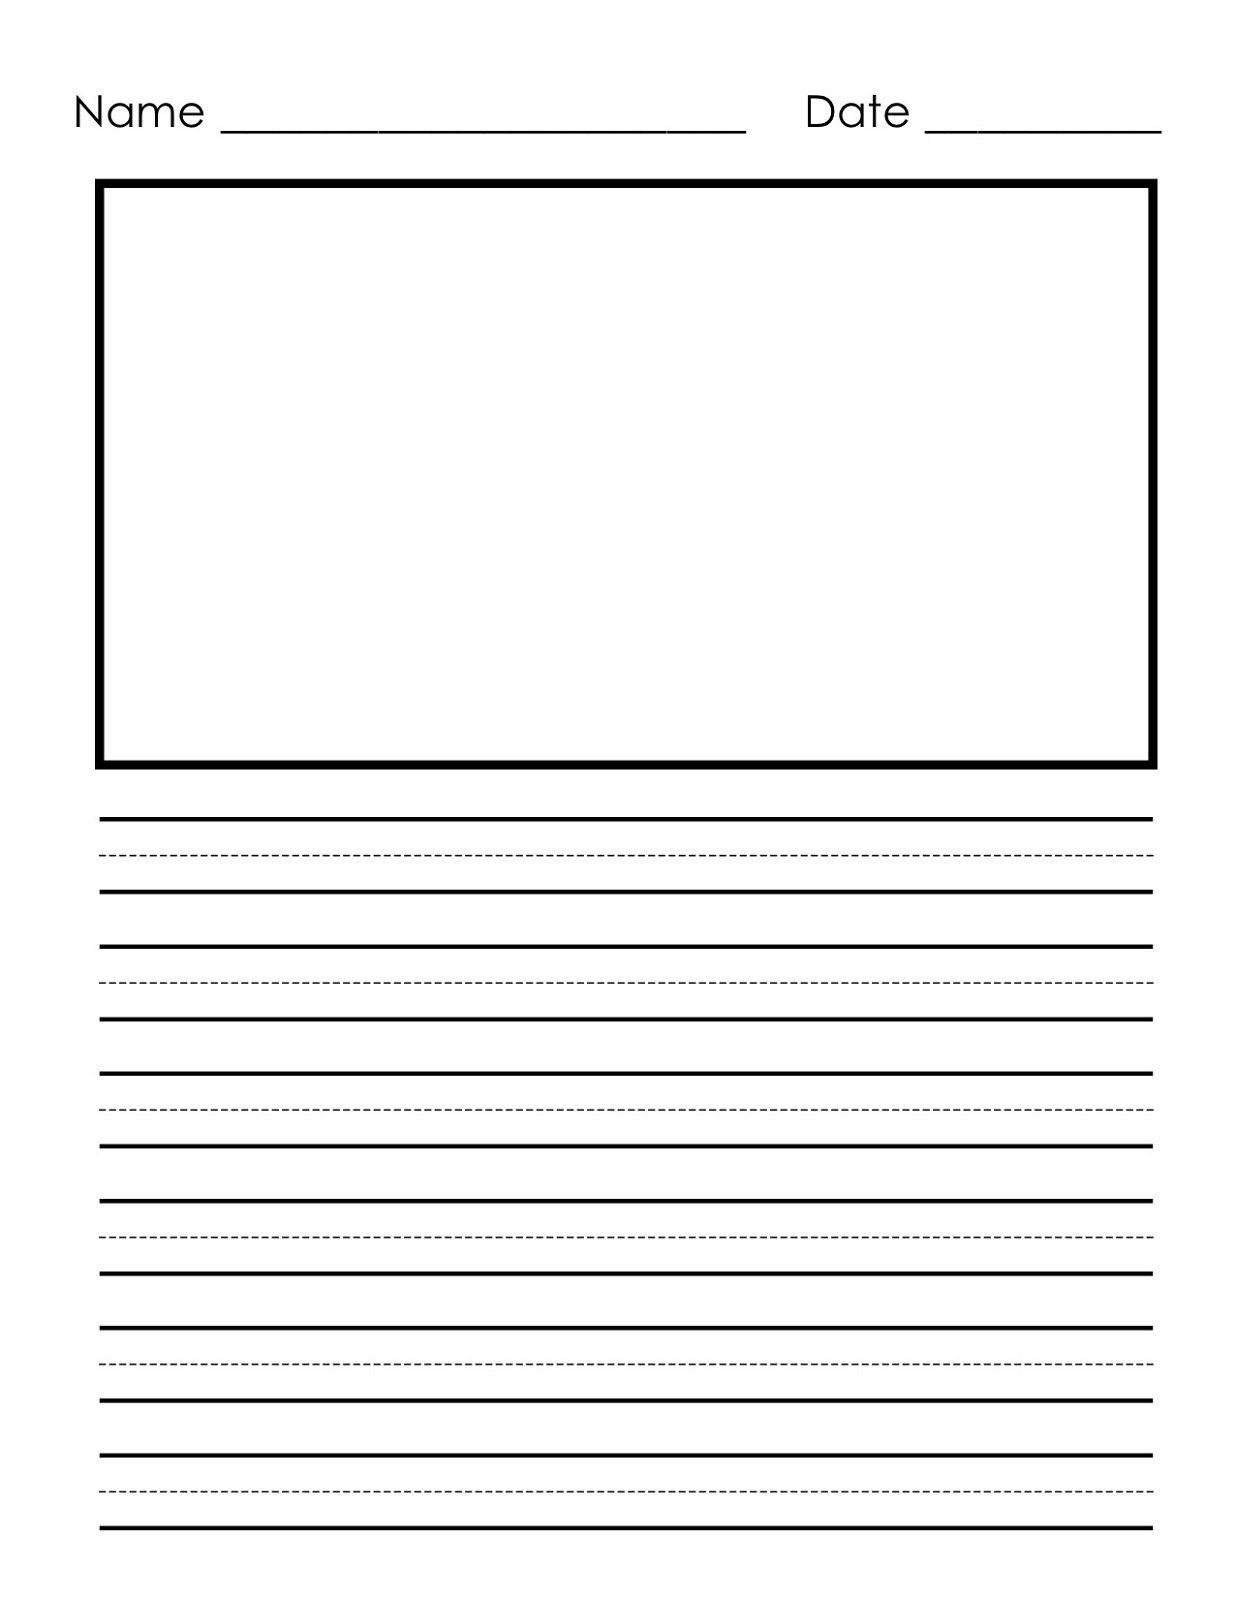 Writing Paper Printable For Children   Notebook Paper Templates - Free Printable Kindergarten Lined Paper Template